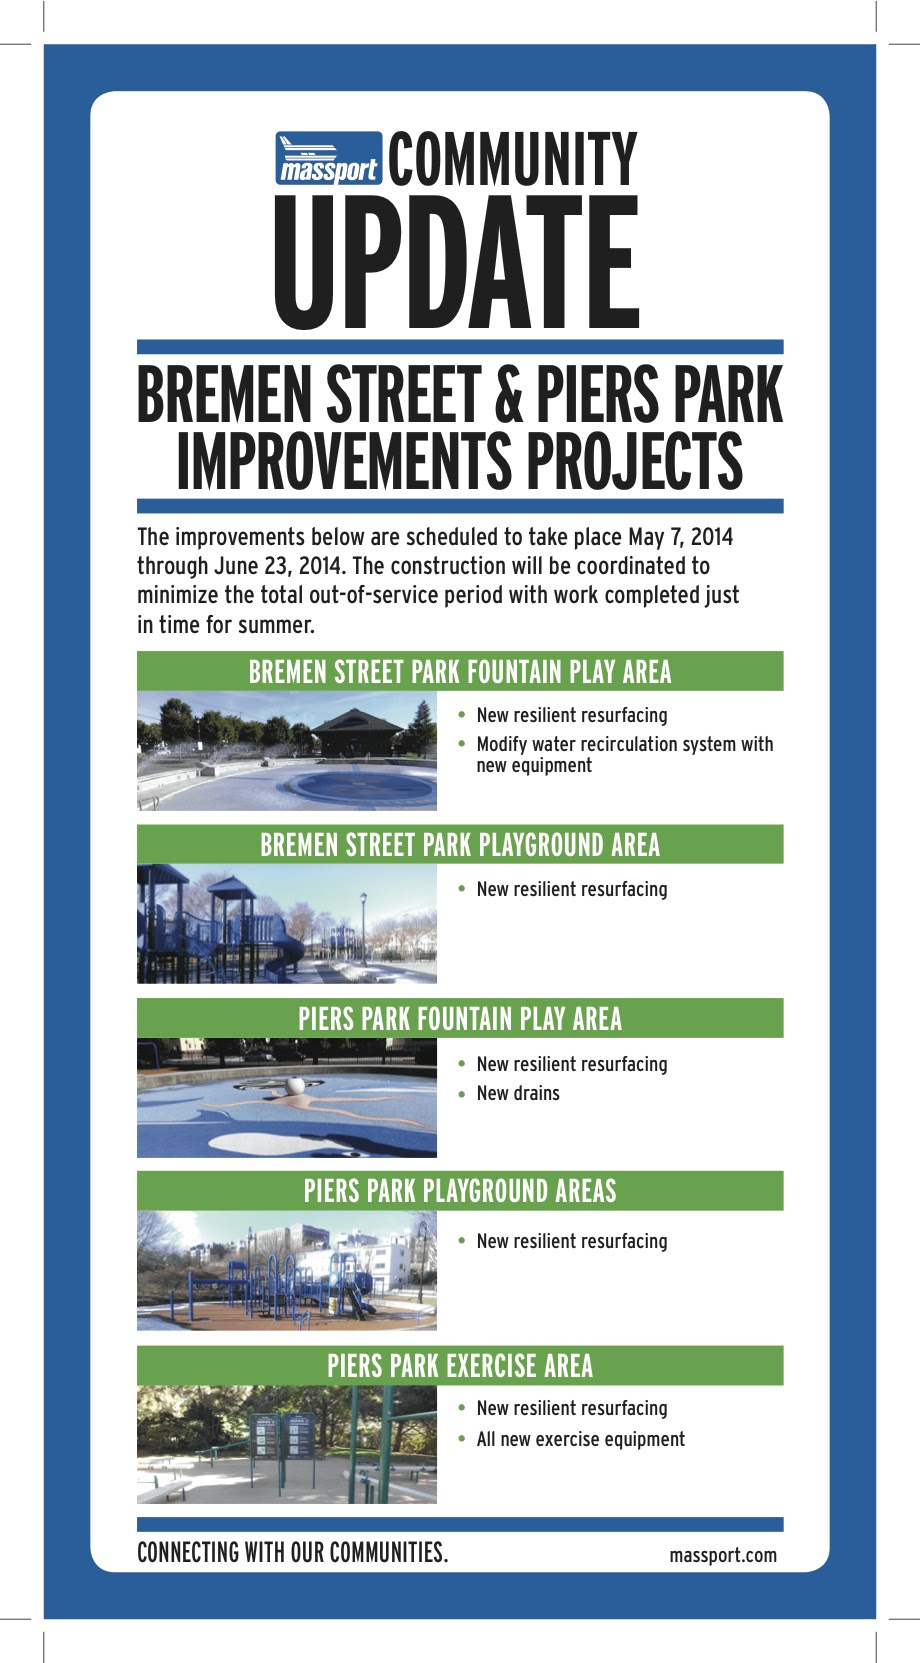 Community Update Improvements to Bremen Street East Boston